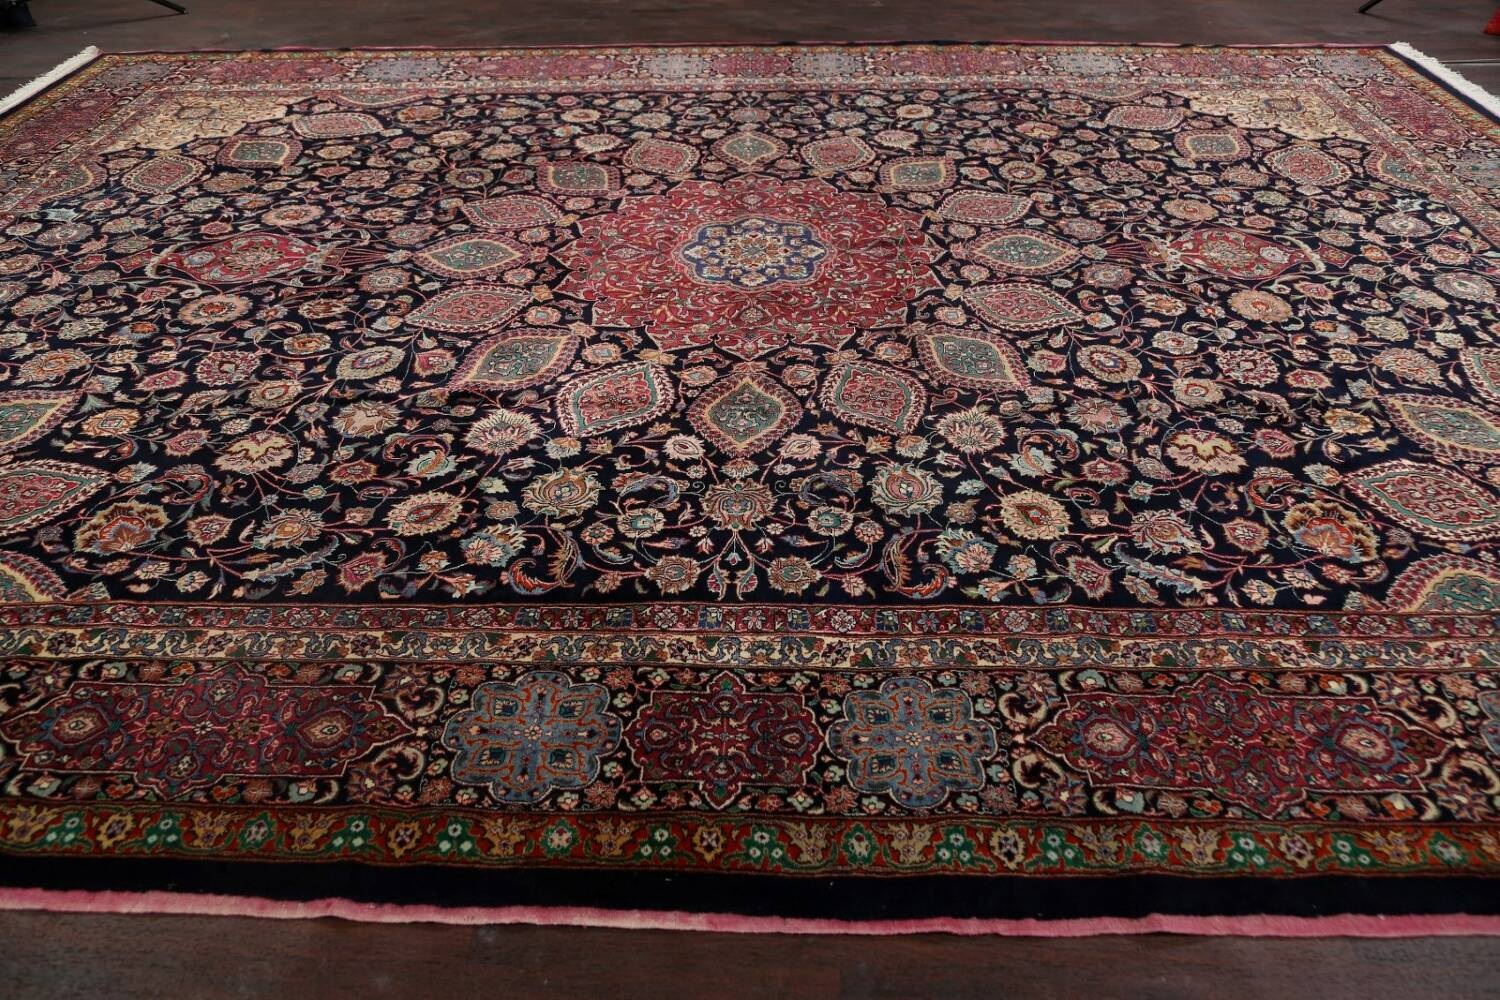 Large Floral Mashad Persian Area Rug 11x15 image 16